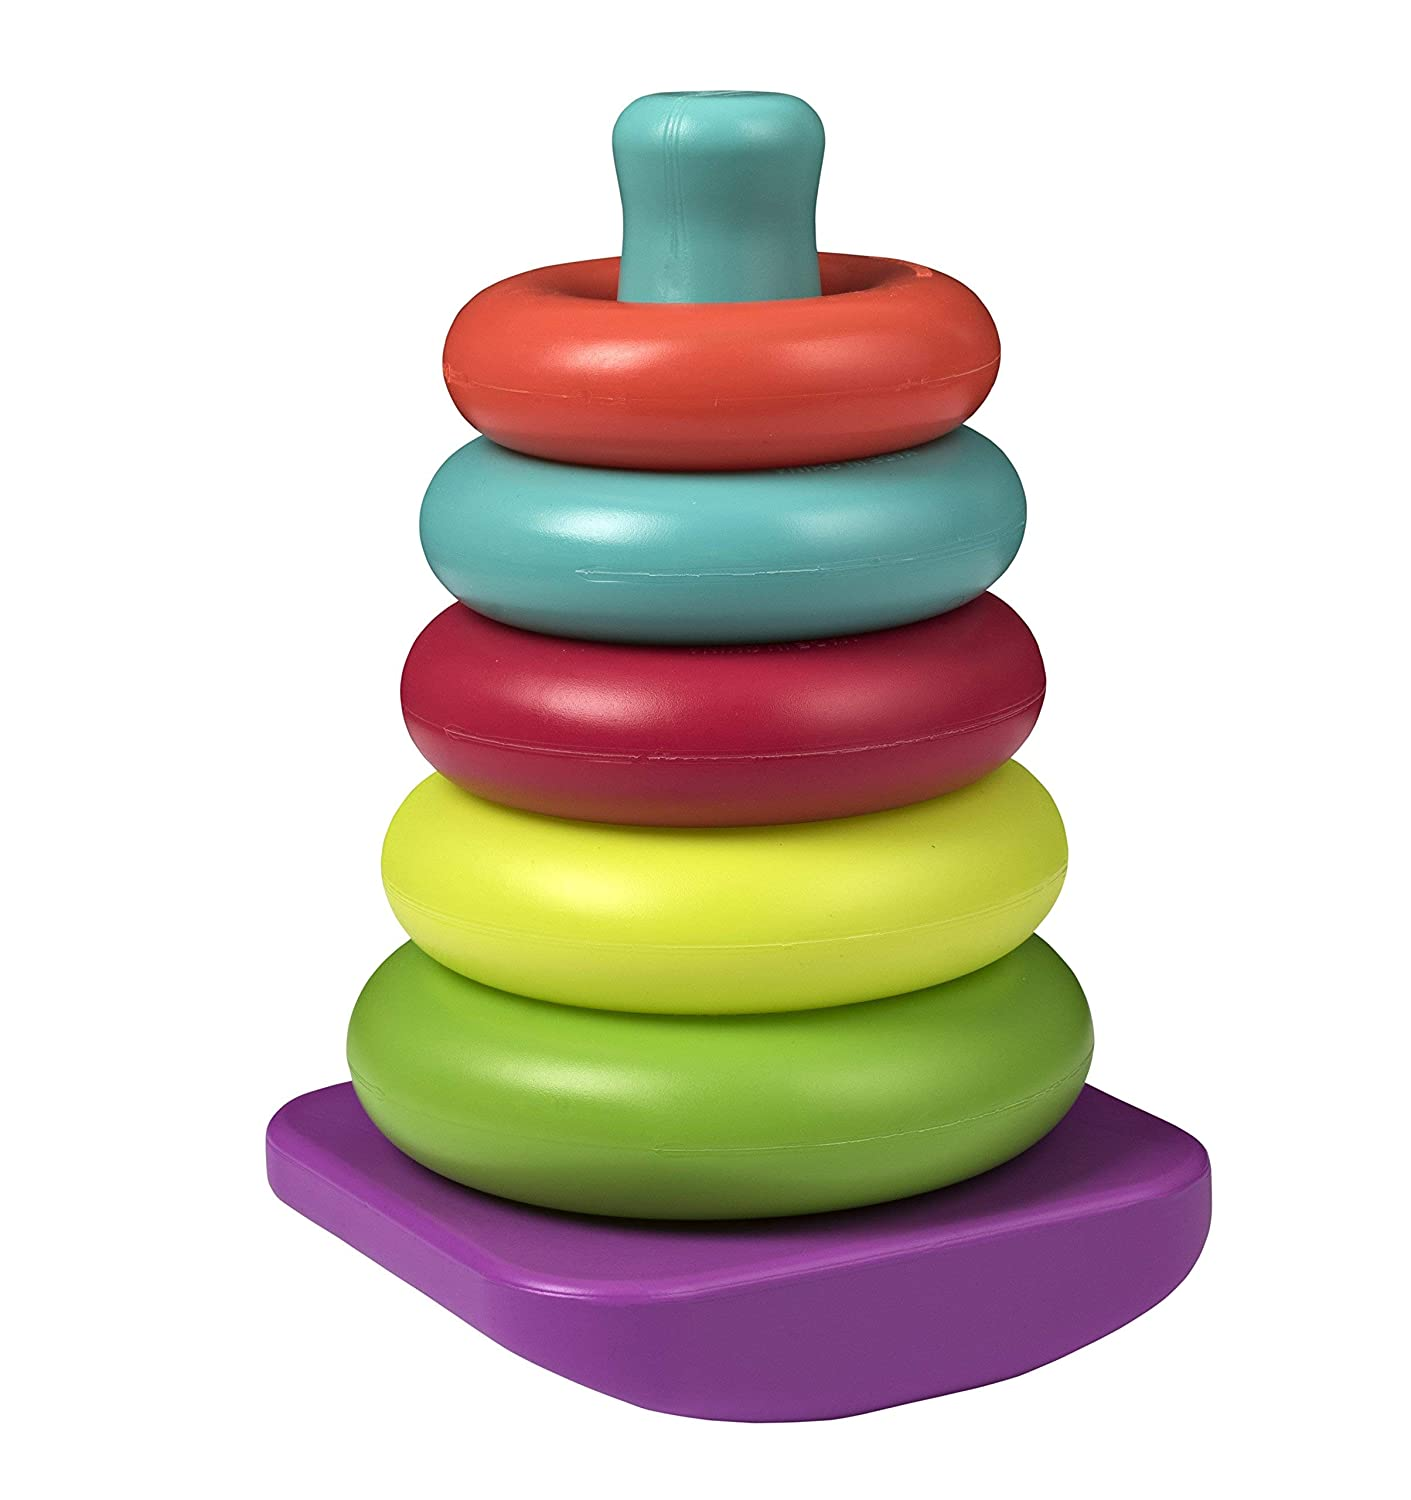 Playkidz Rainbow Stacking Rings Educational Toy and Sensory Stacking Toys for Baby Infant Toddler